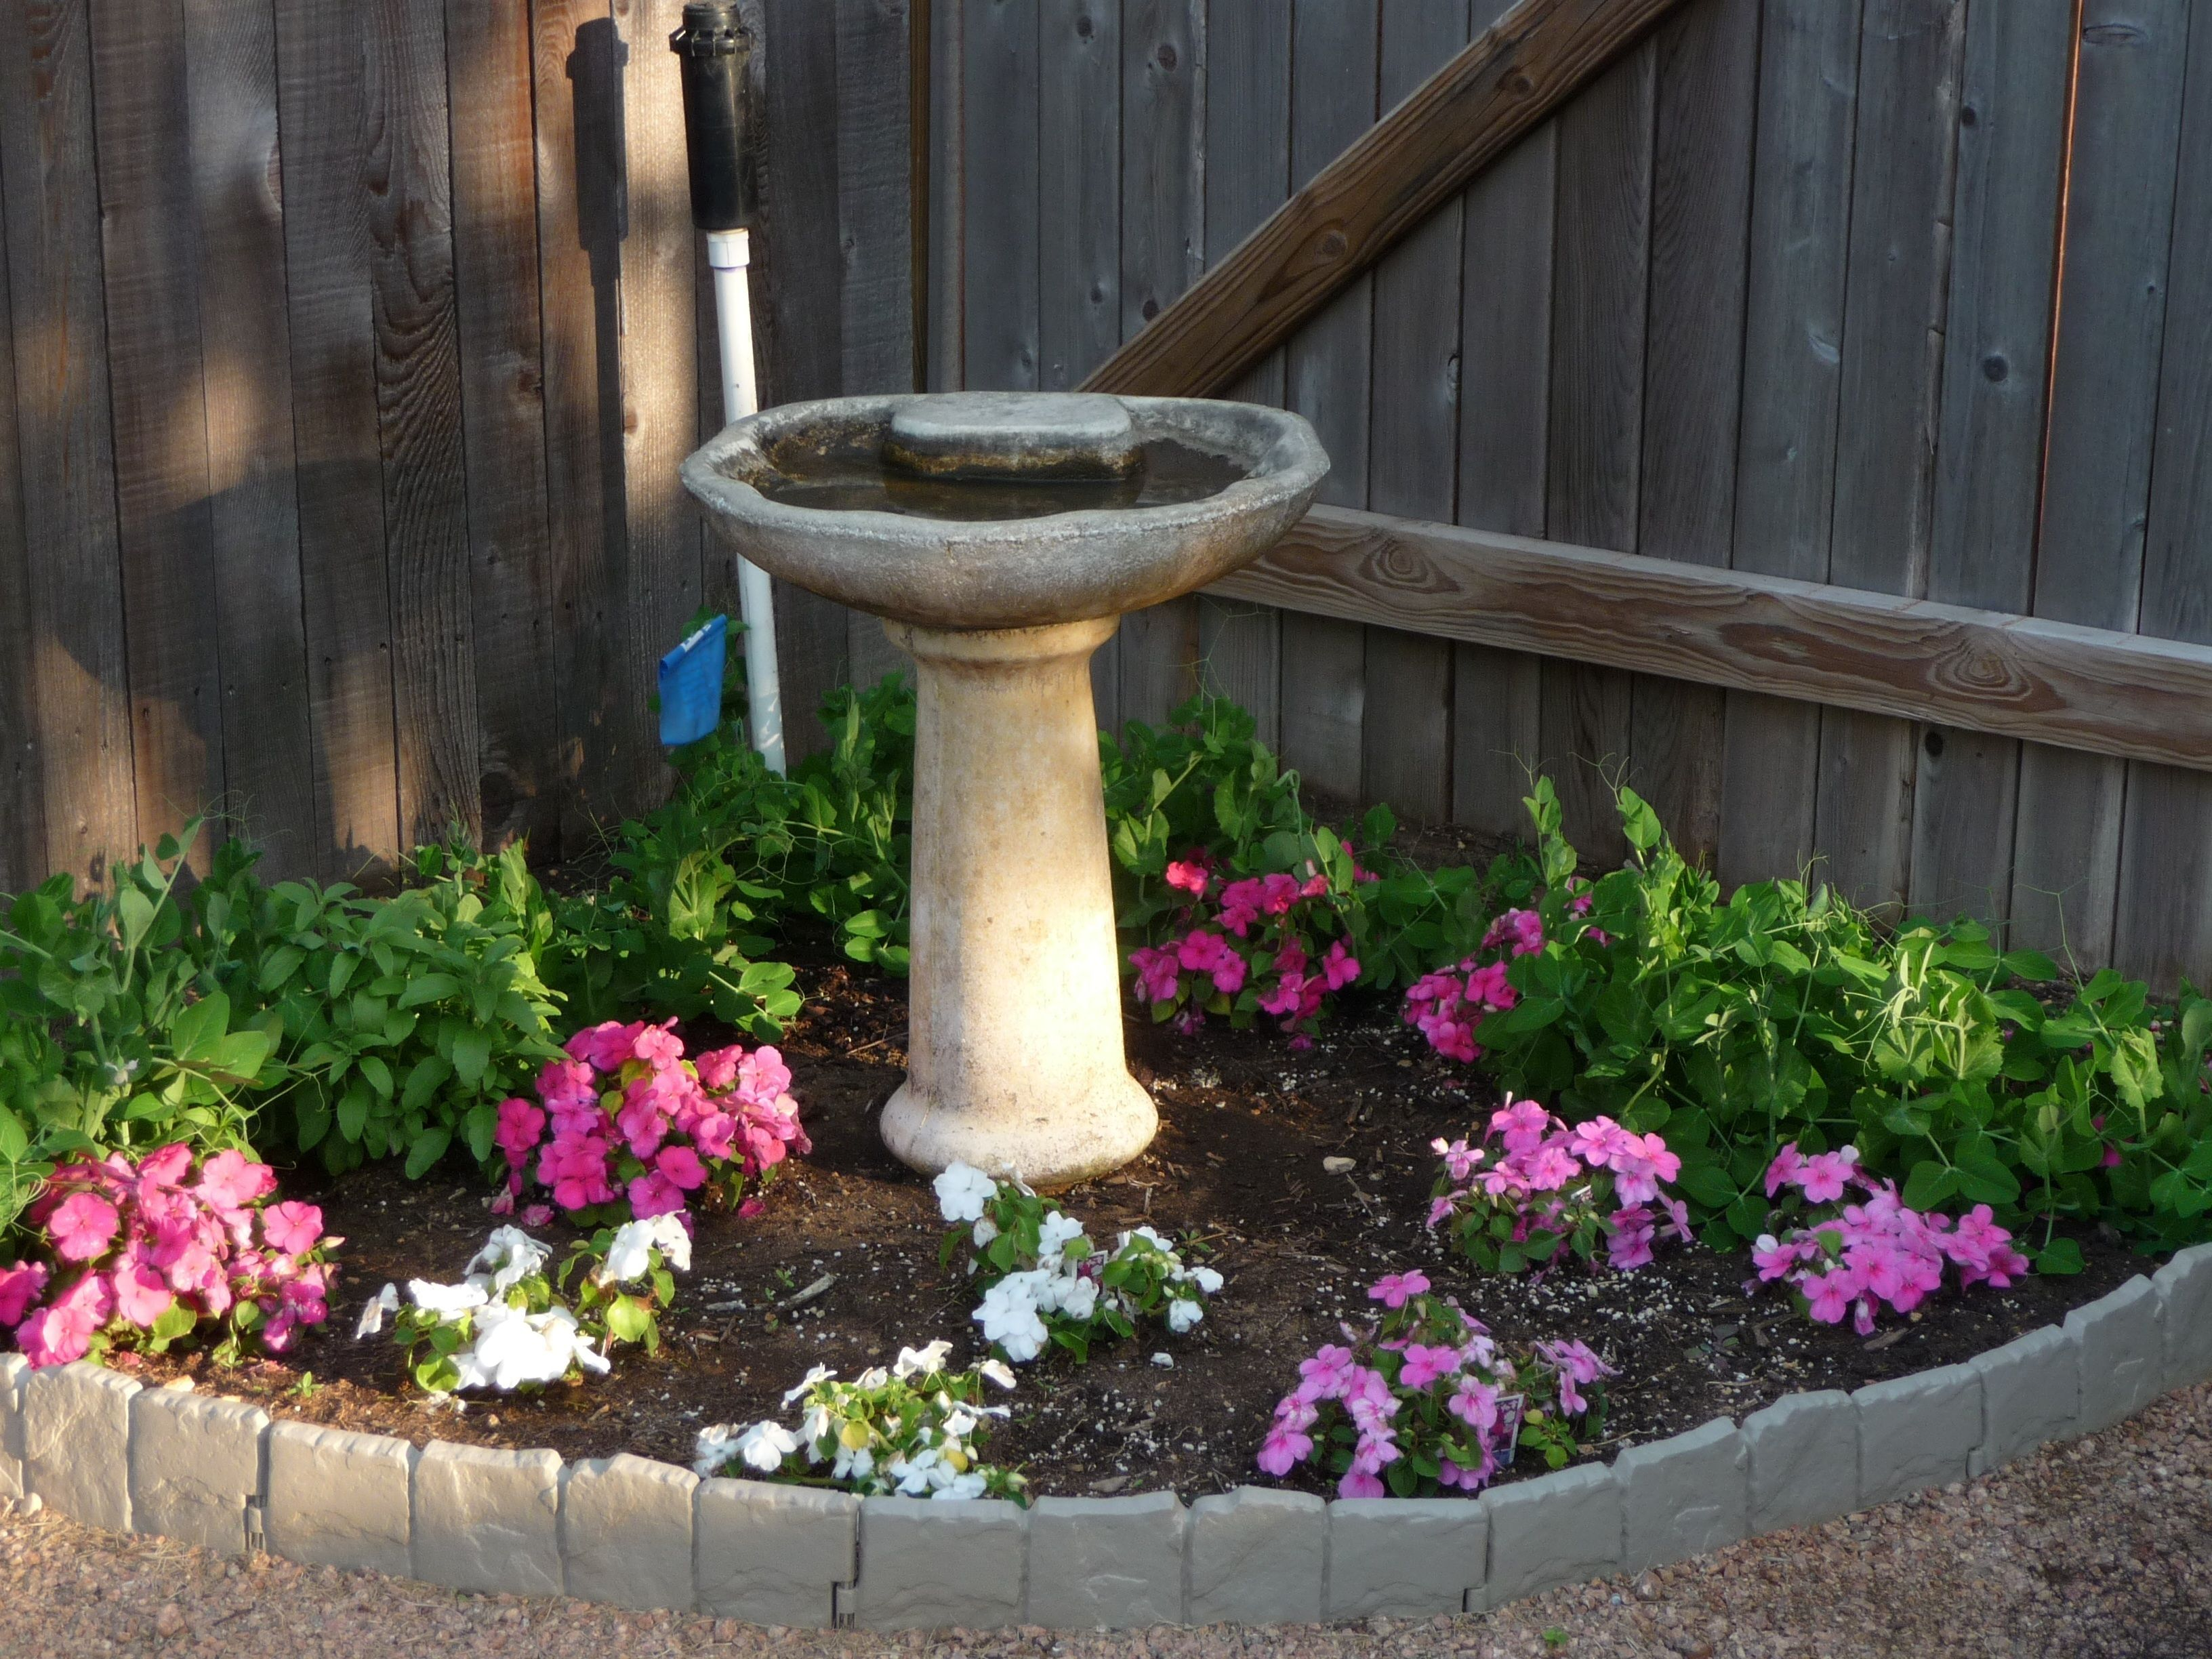 Corner Flower Beds Birdbath In Flower Bed Corner Flower Bed